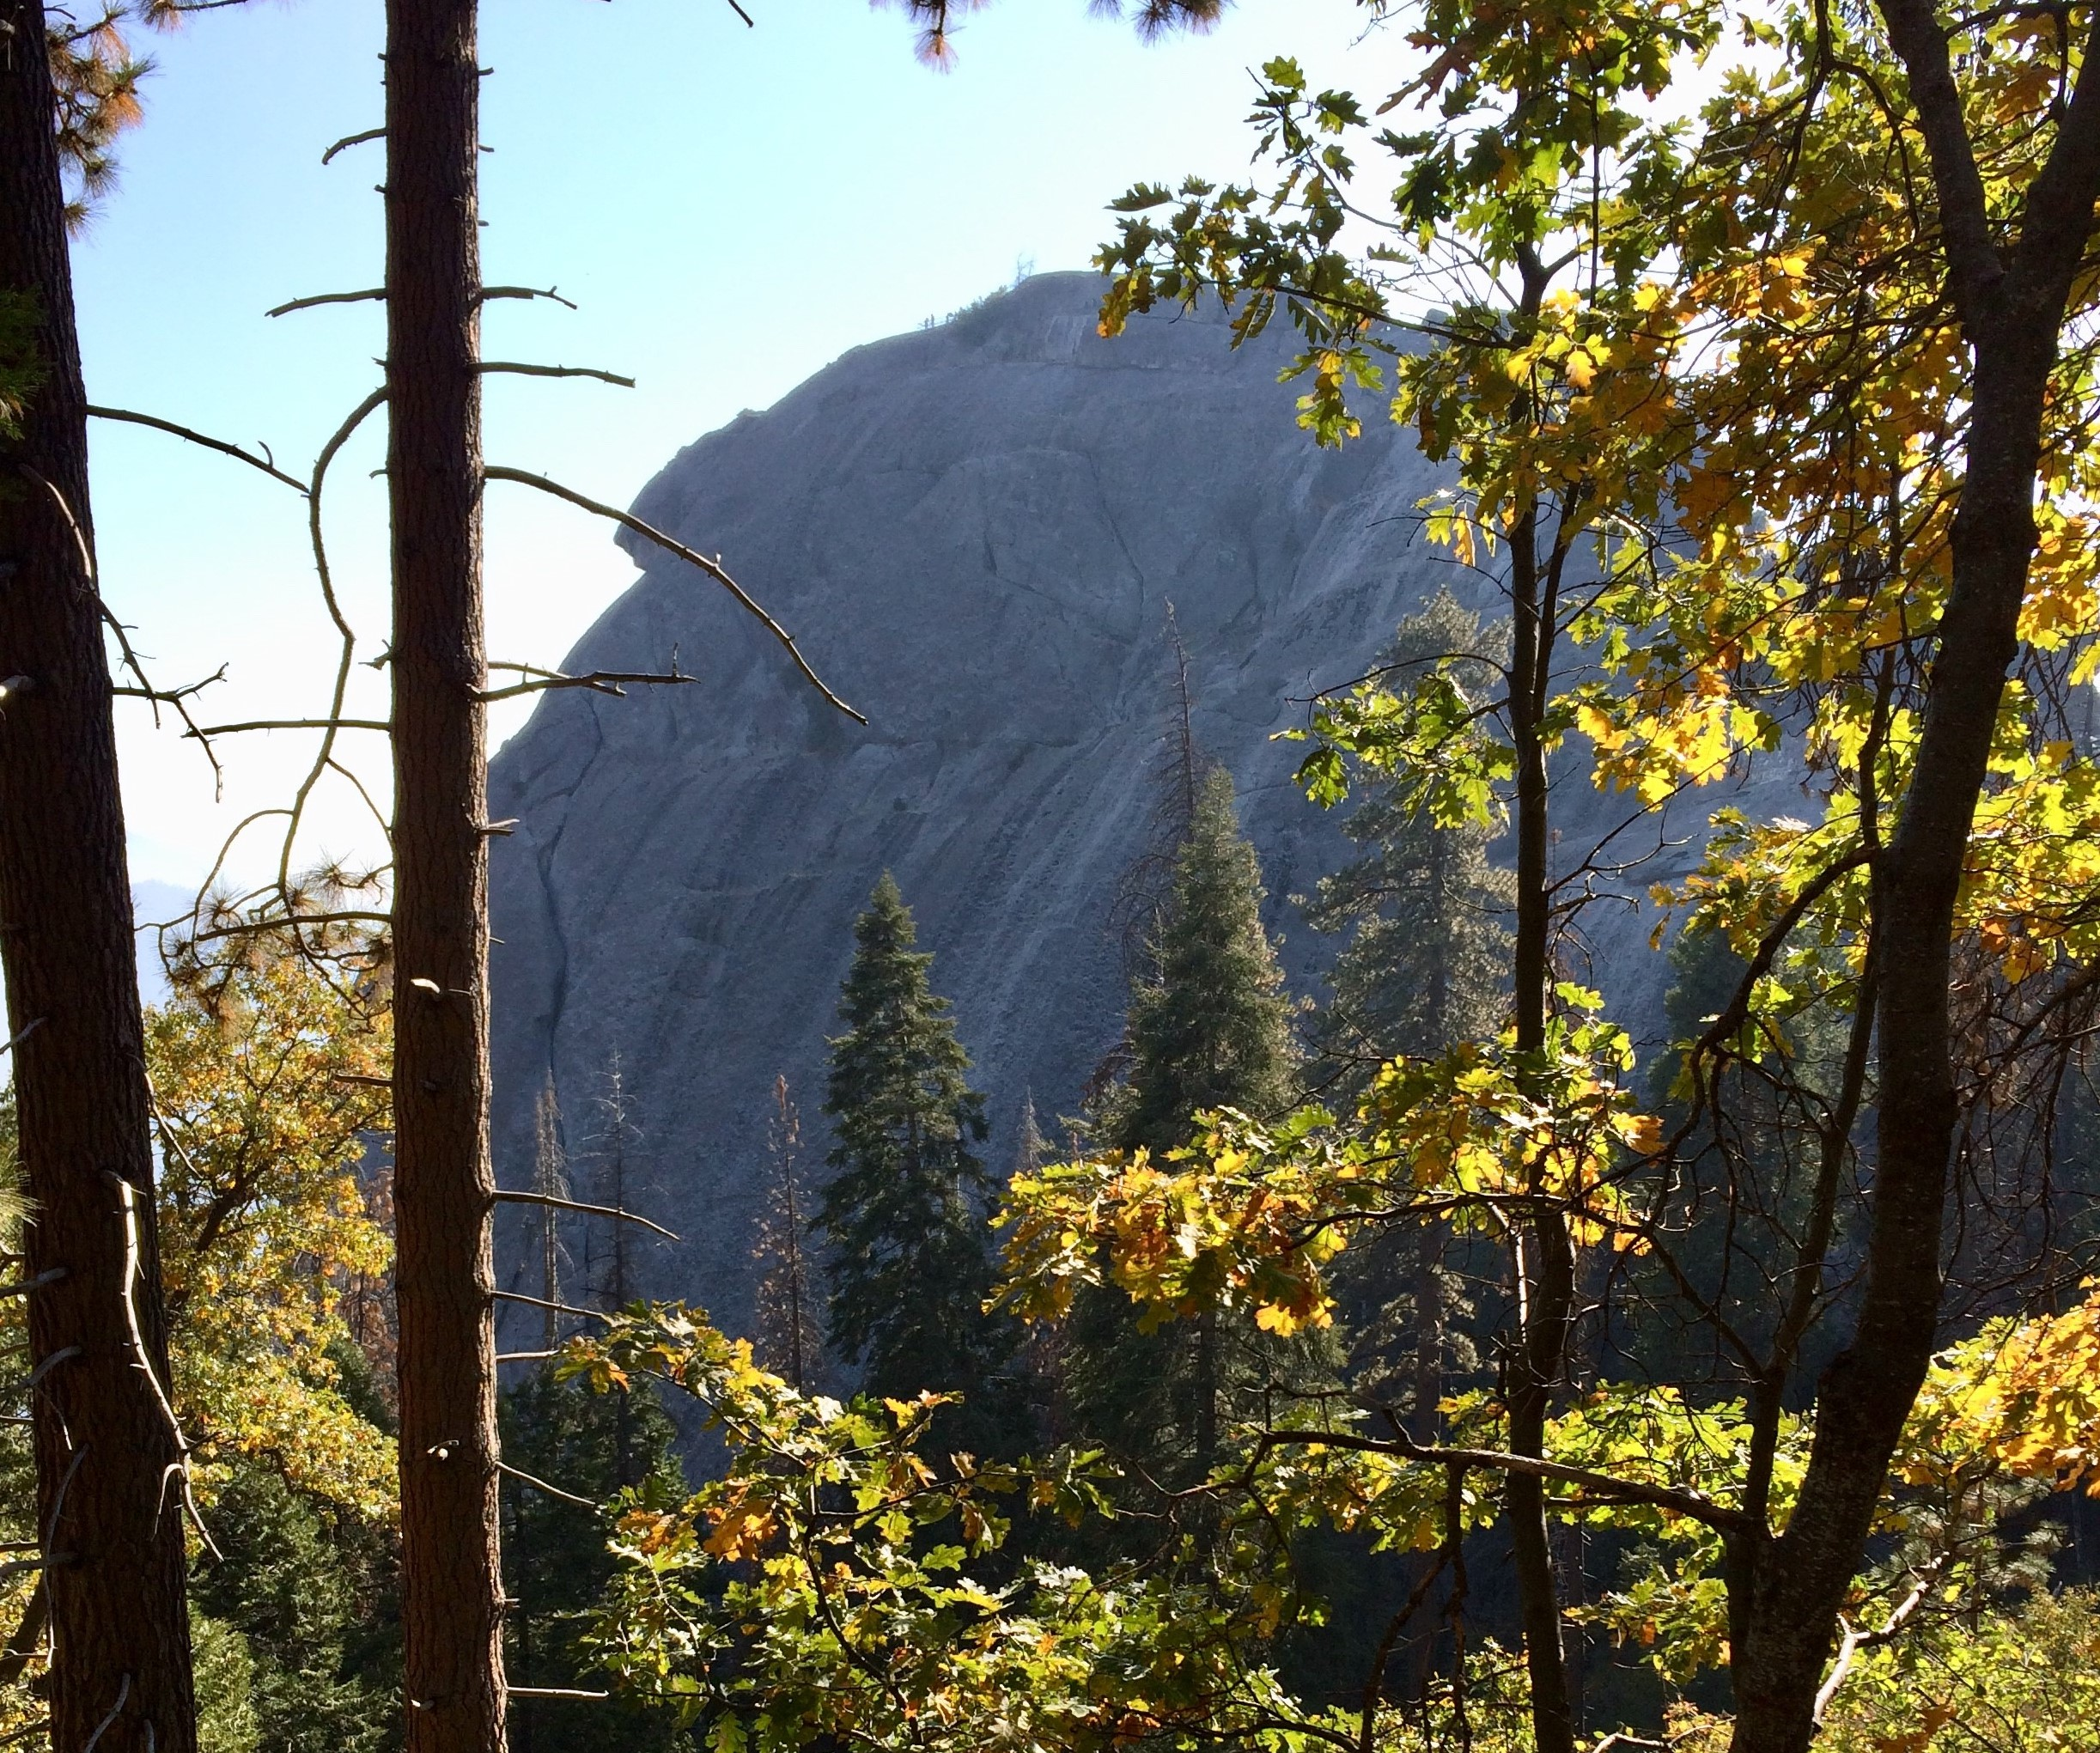 Moro Rock, Three Leaves, CA - I made it all the way to the top!